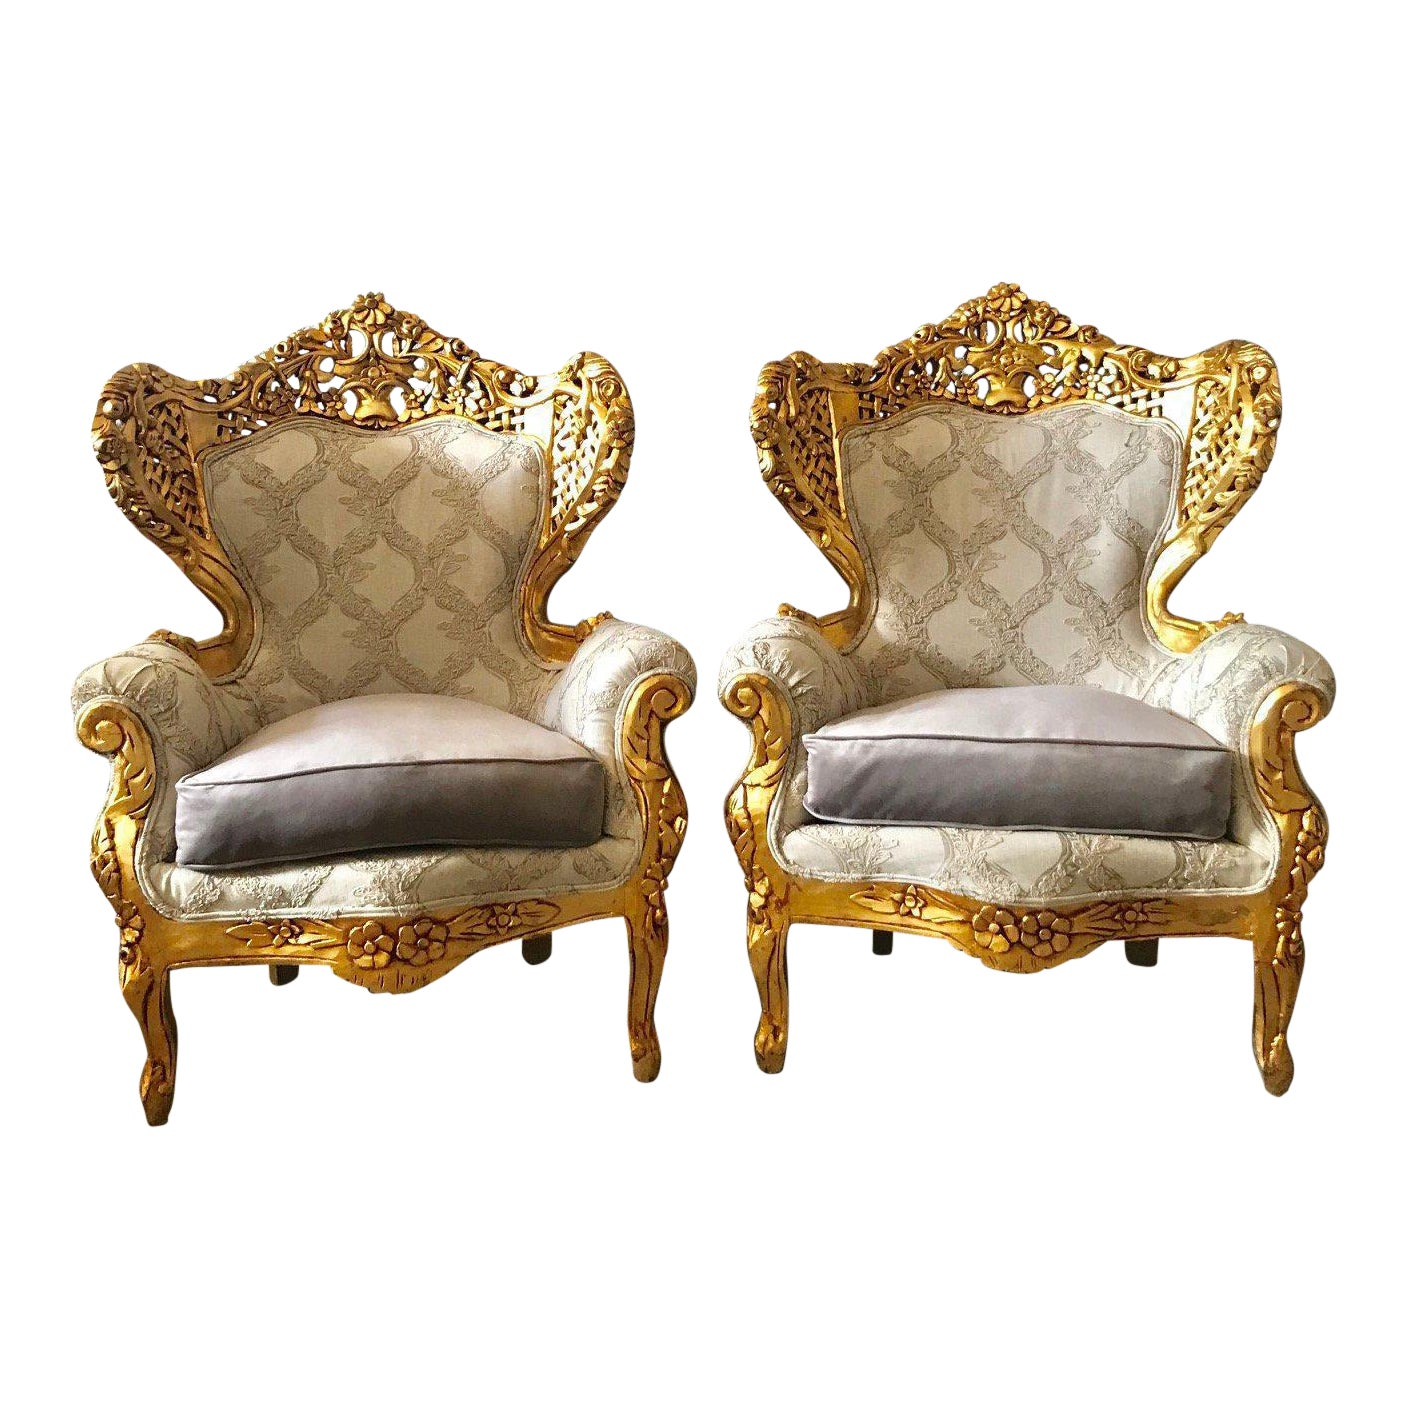 1900s Vintage Italian Rococo Style Chairs A Pair Chairish